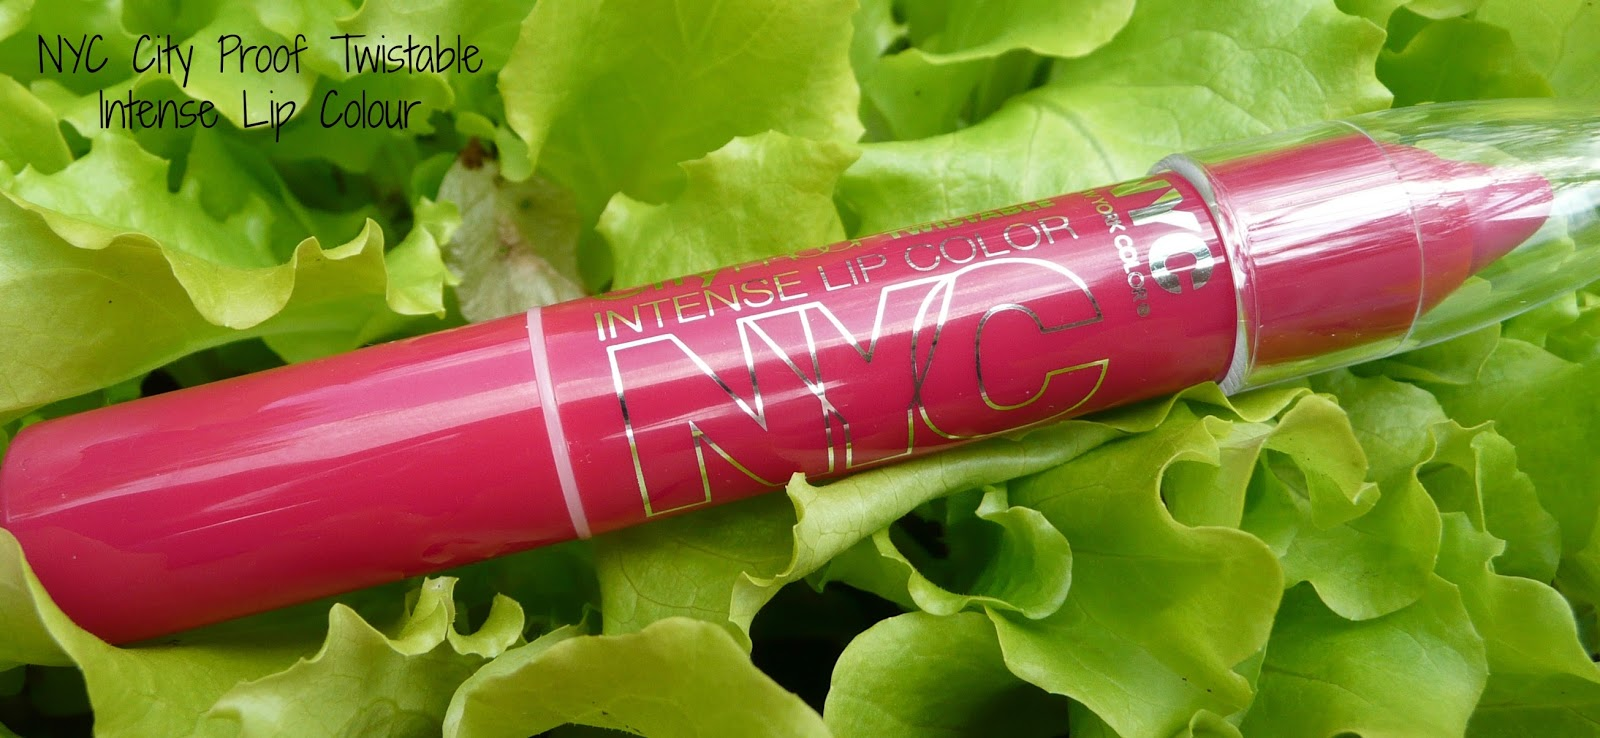 NYC City Proof Twistable Intense Lip Colour Review